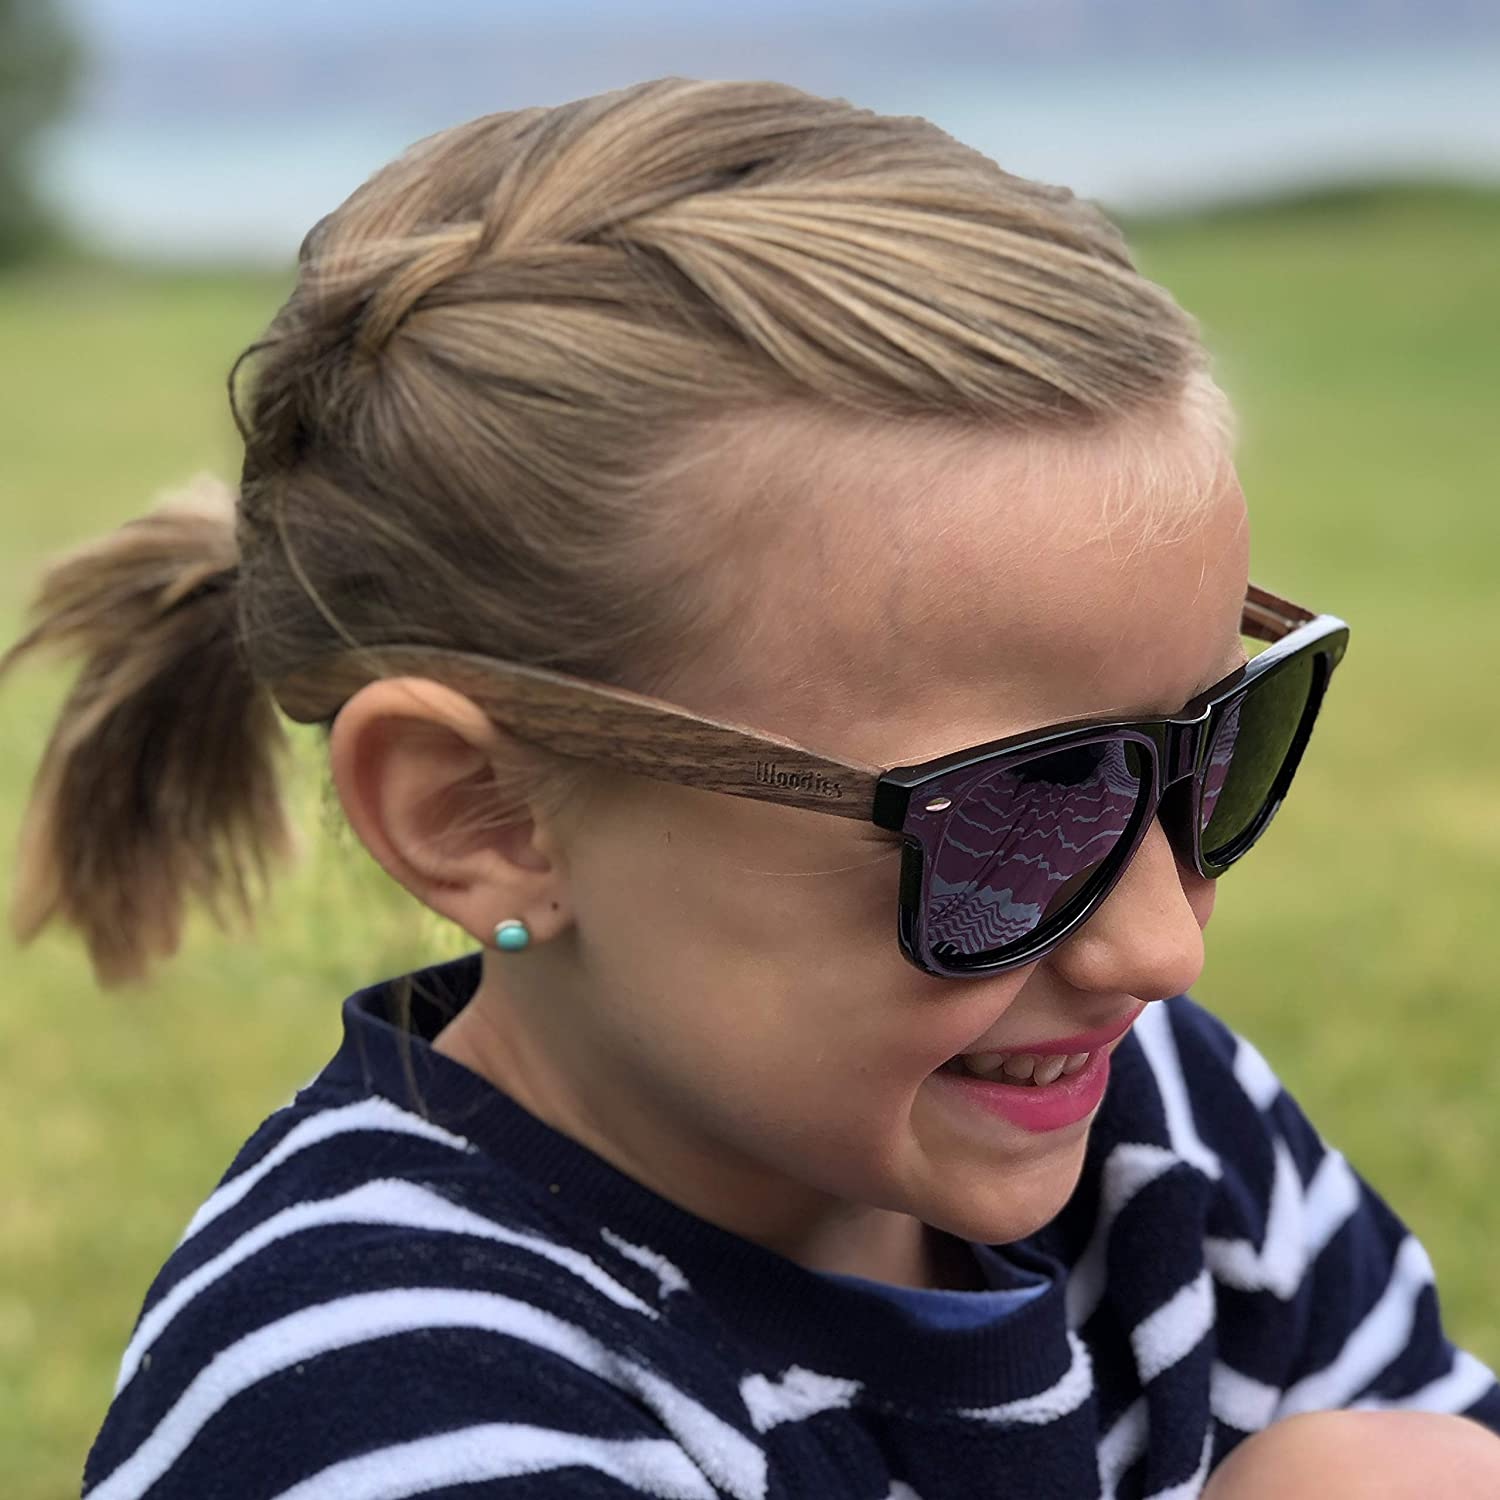 Woodies Walnut Wood Sunglasses for Kids with Polarized Lenses